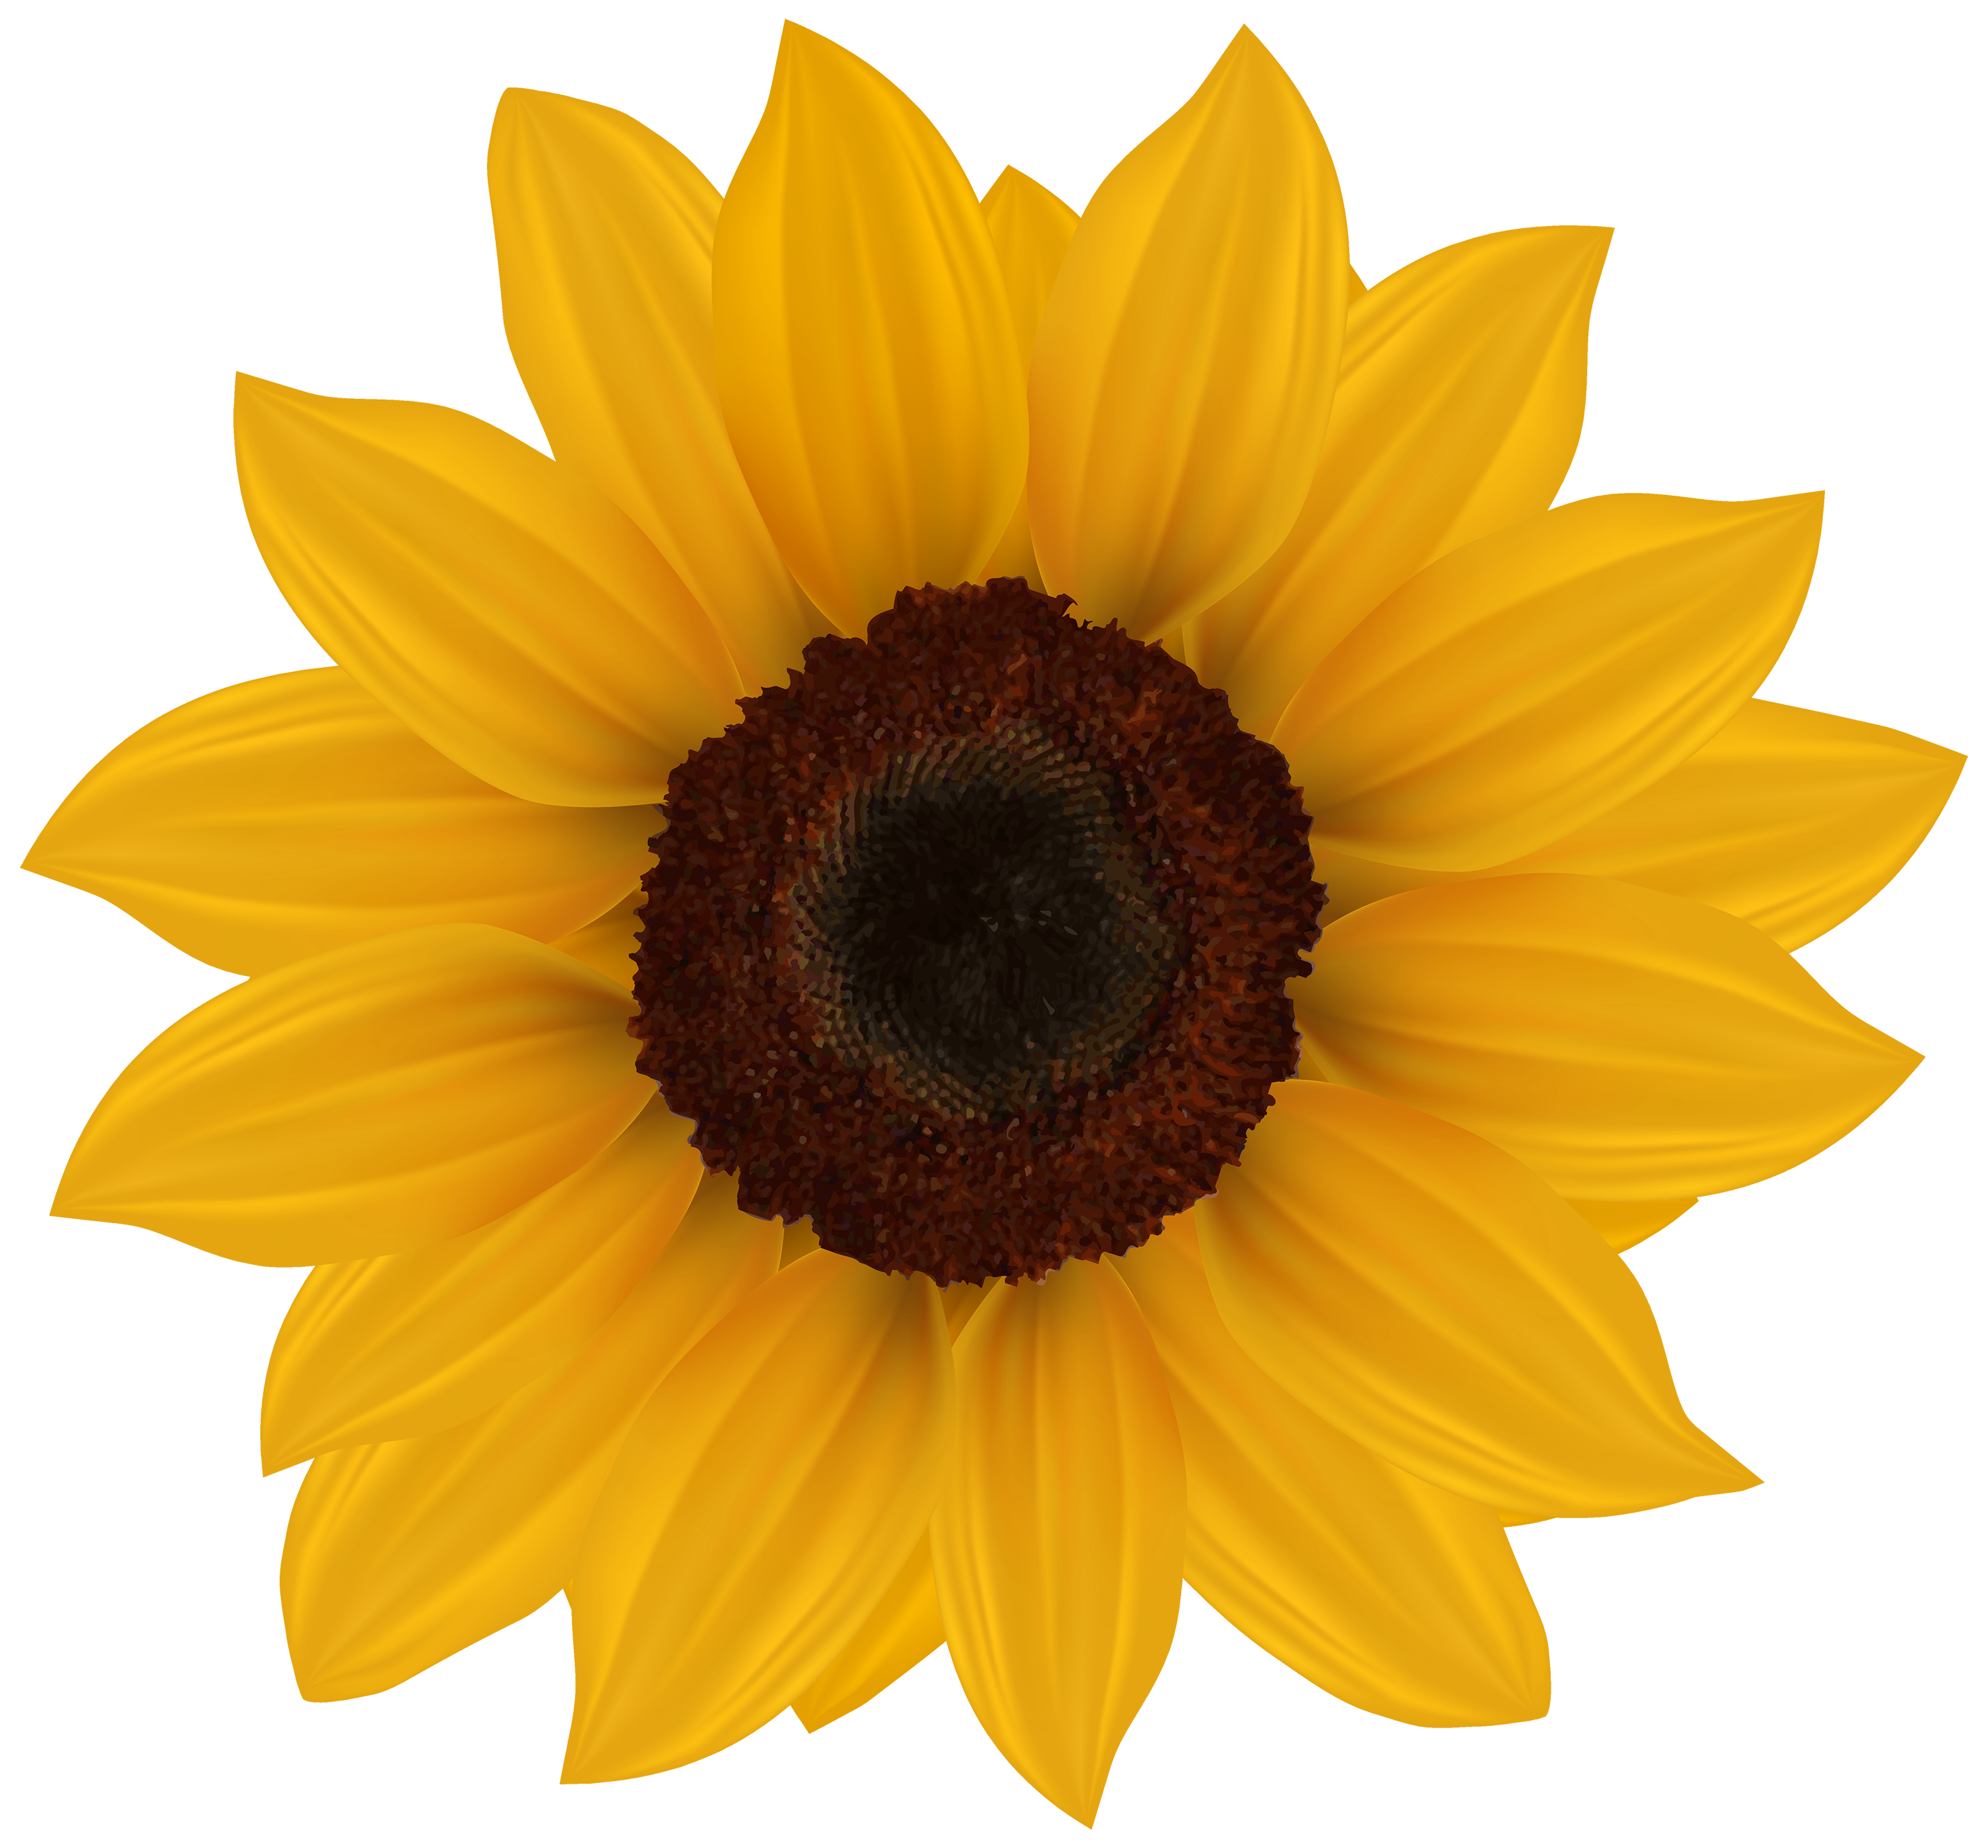 sunflower png clipart image best web clipart #17188